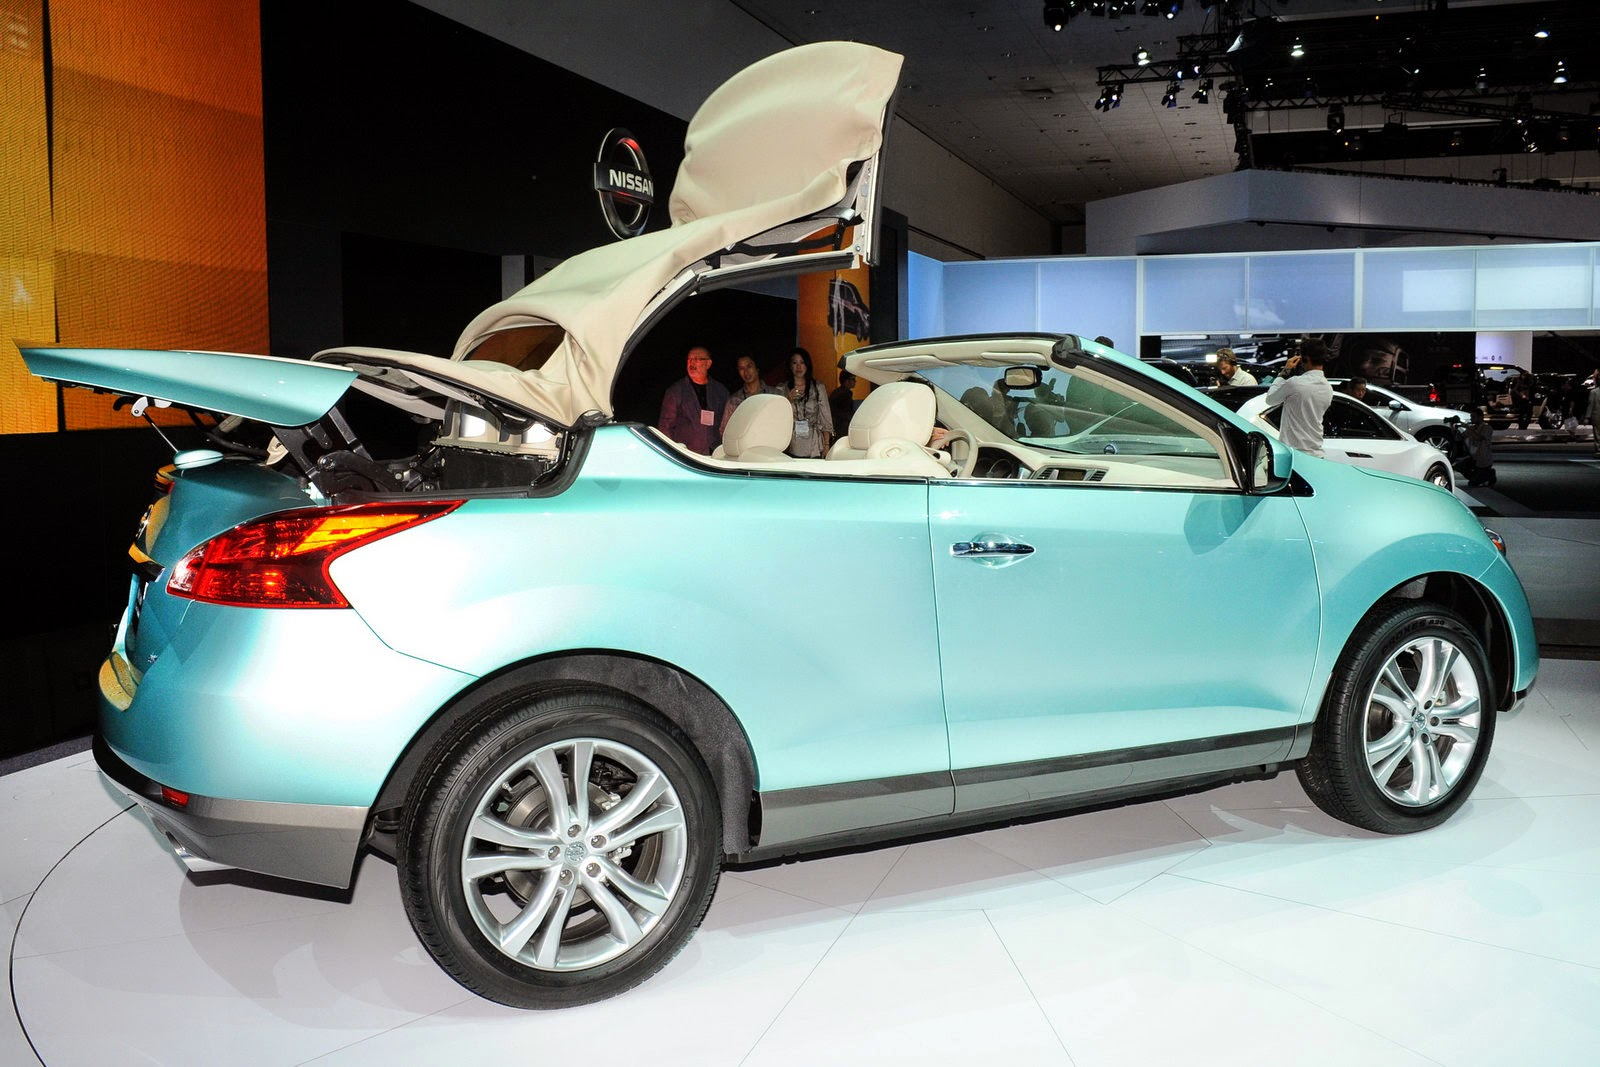 Failed Products, The Nissan Murano CrossCabriolet | Marketing